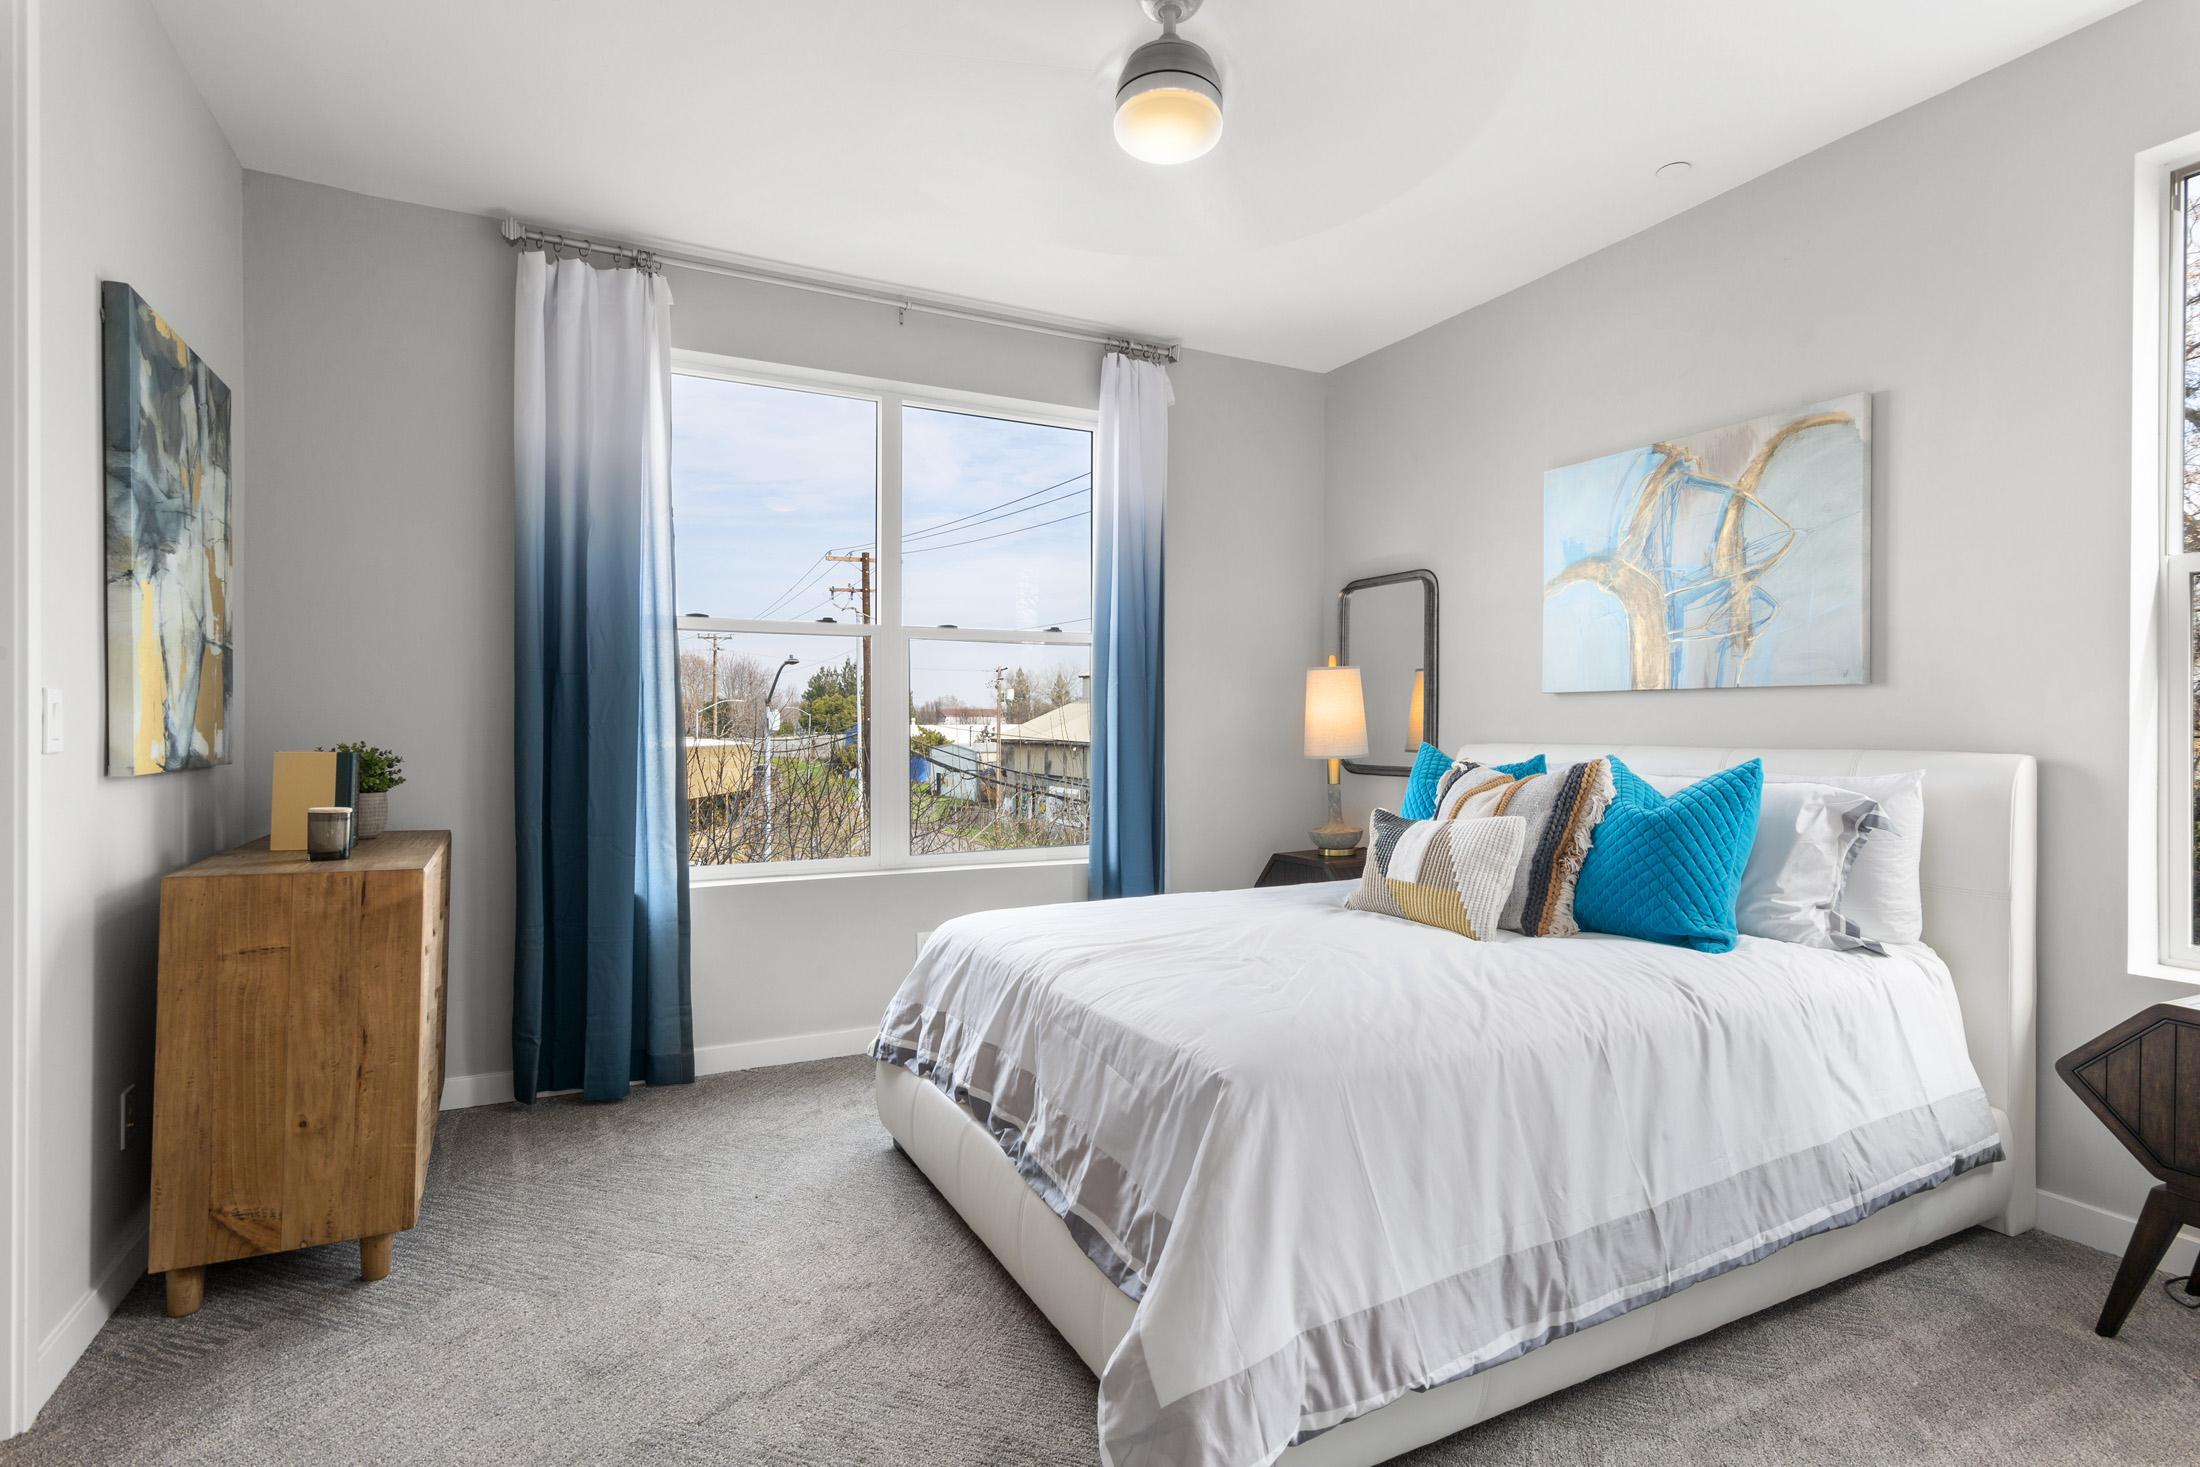 Bedroom featured in the Plan 2 By Next Generation Capital  in Sacramento, CA